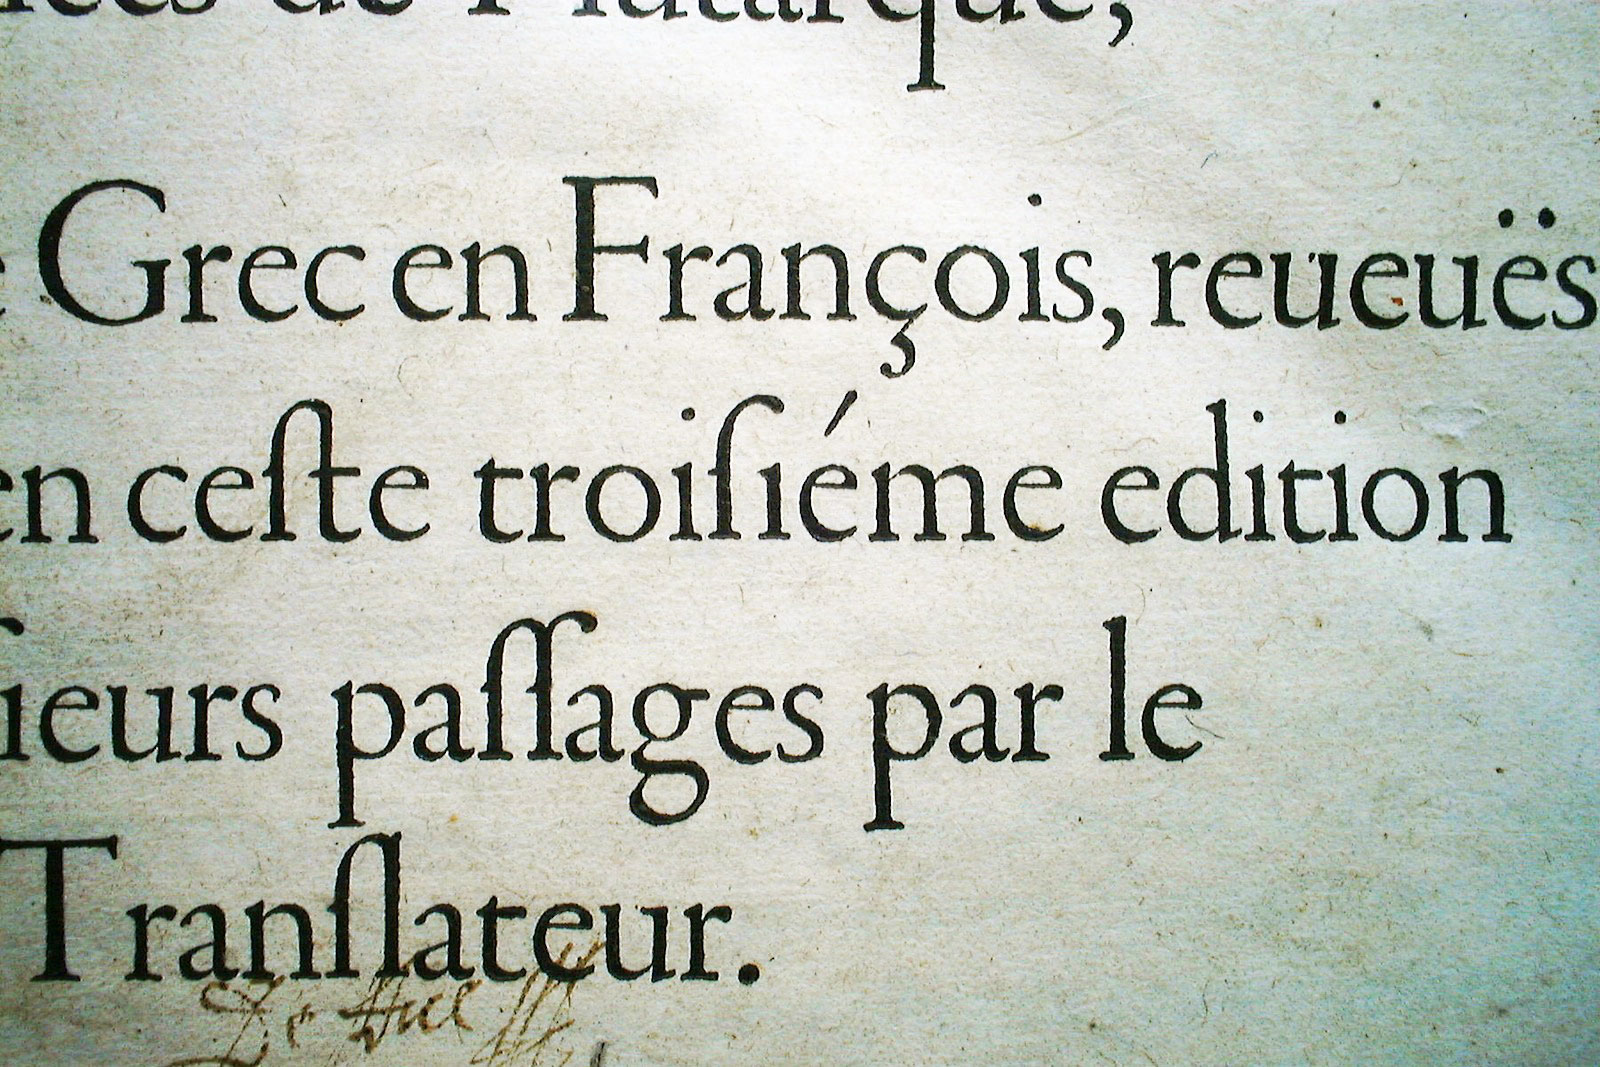 Garamond typeface used on Robert Estienne book